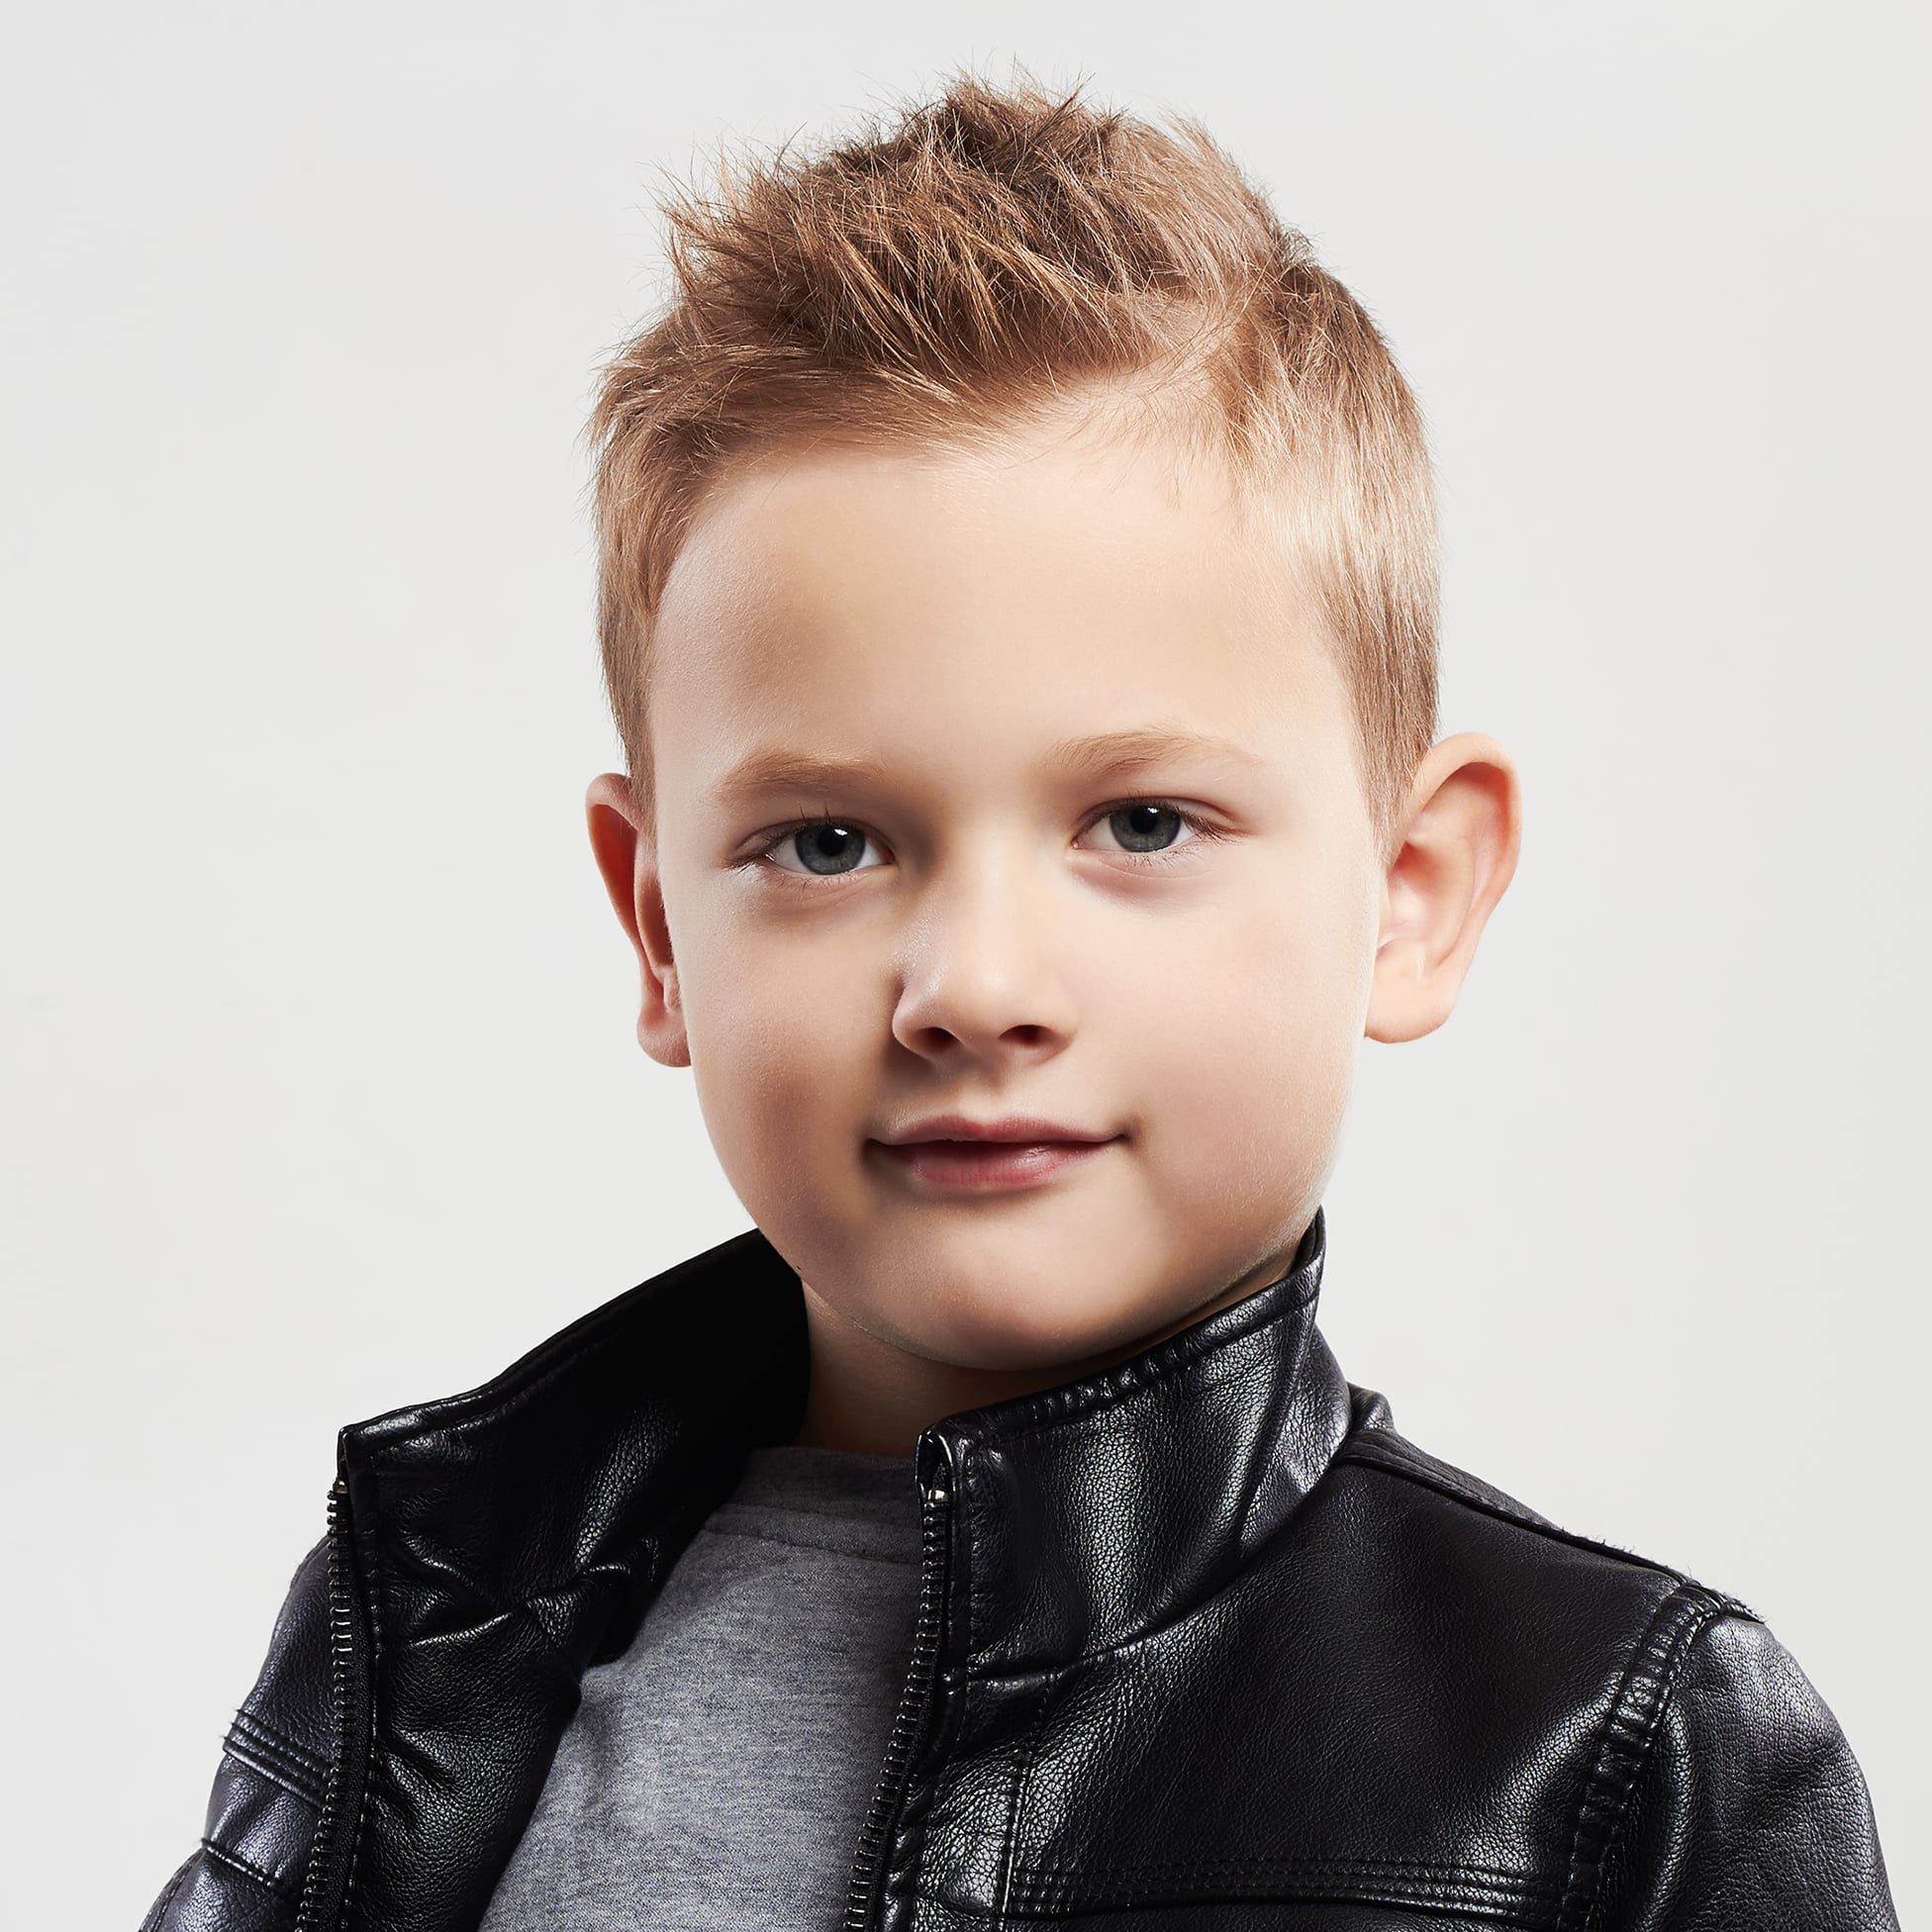 90+ Cool Haircuts for Kids for 2020